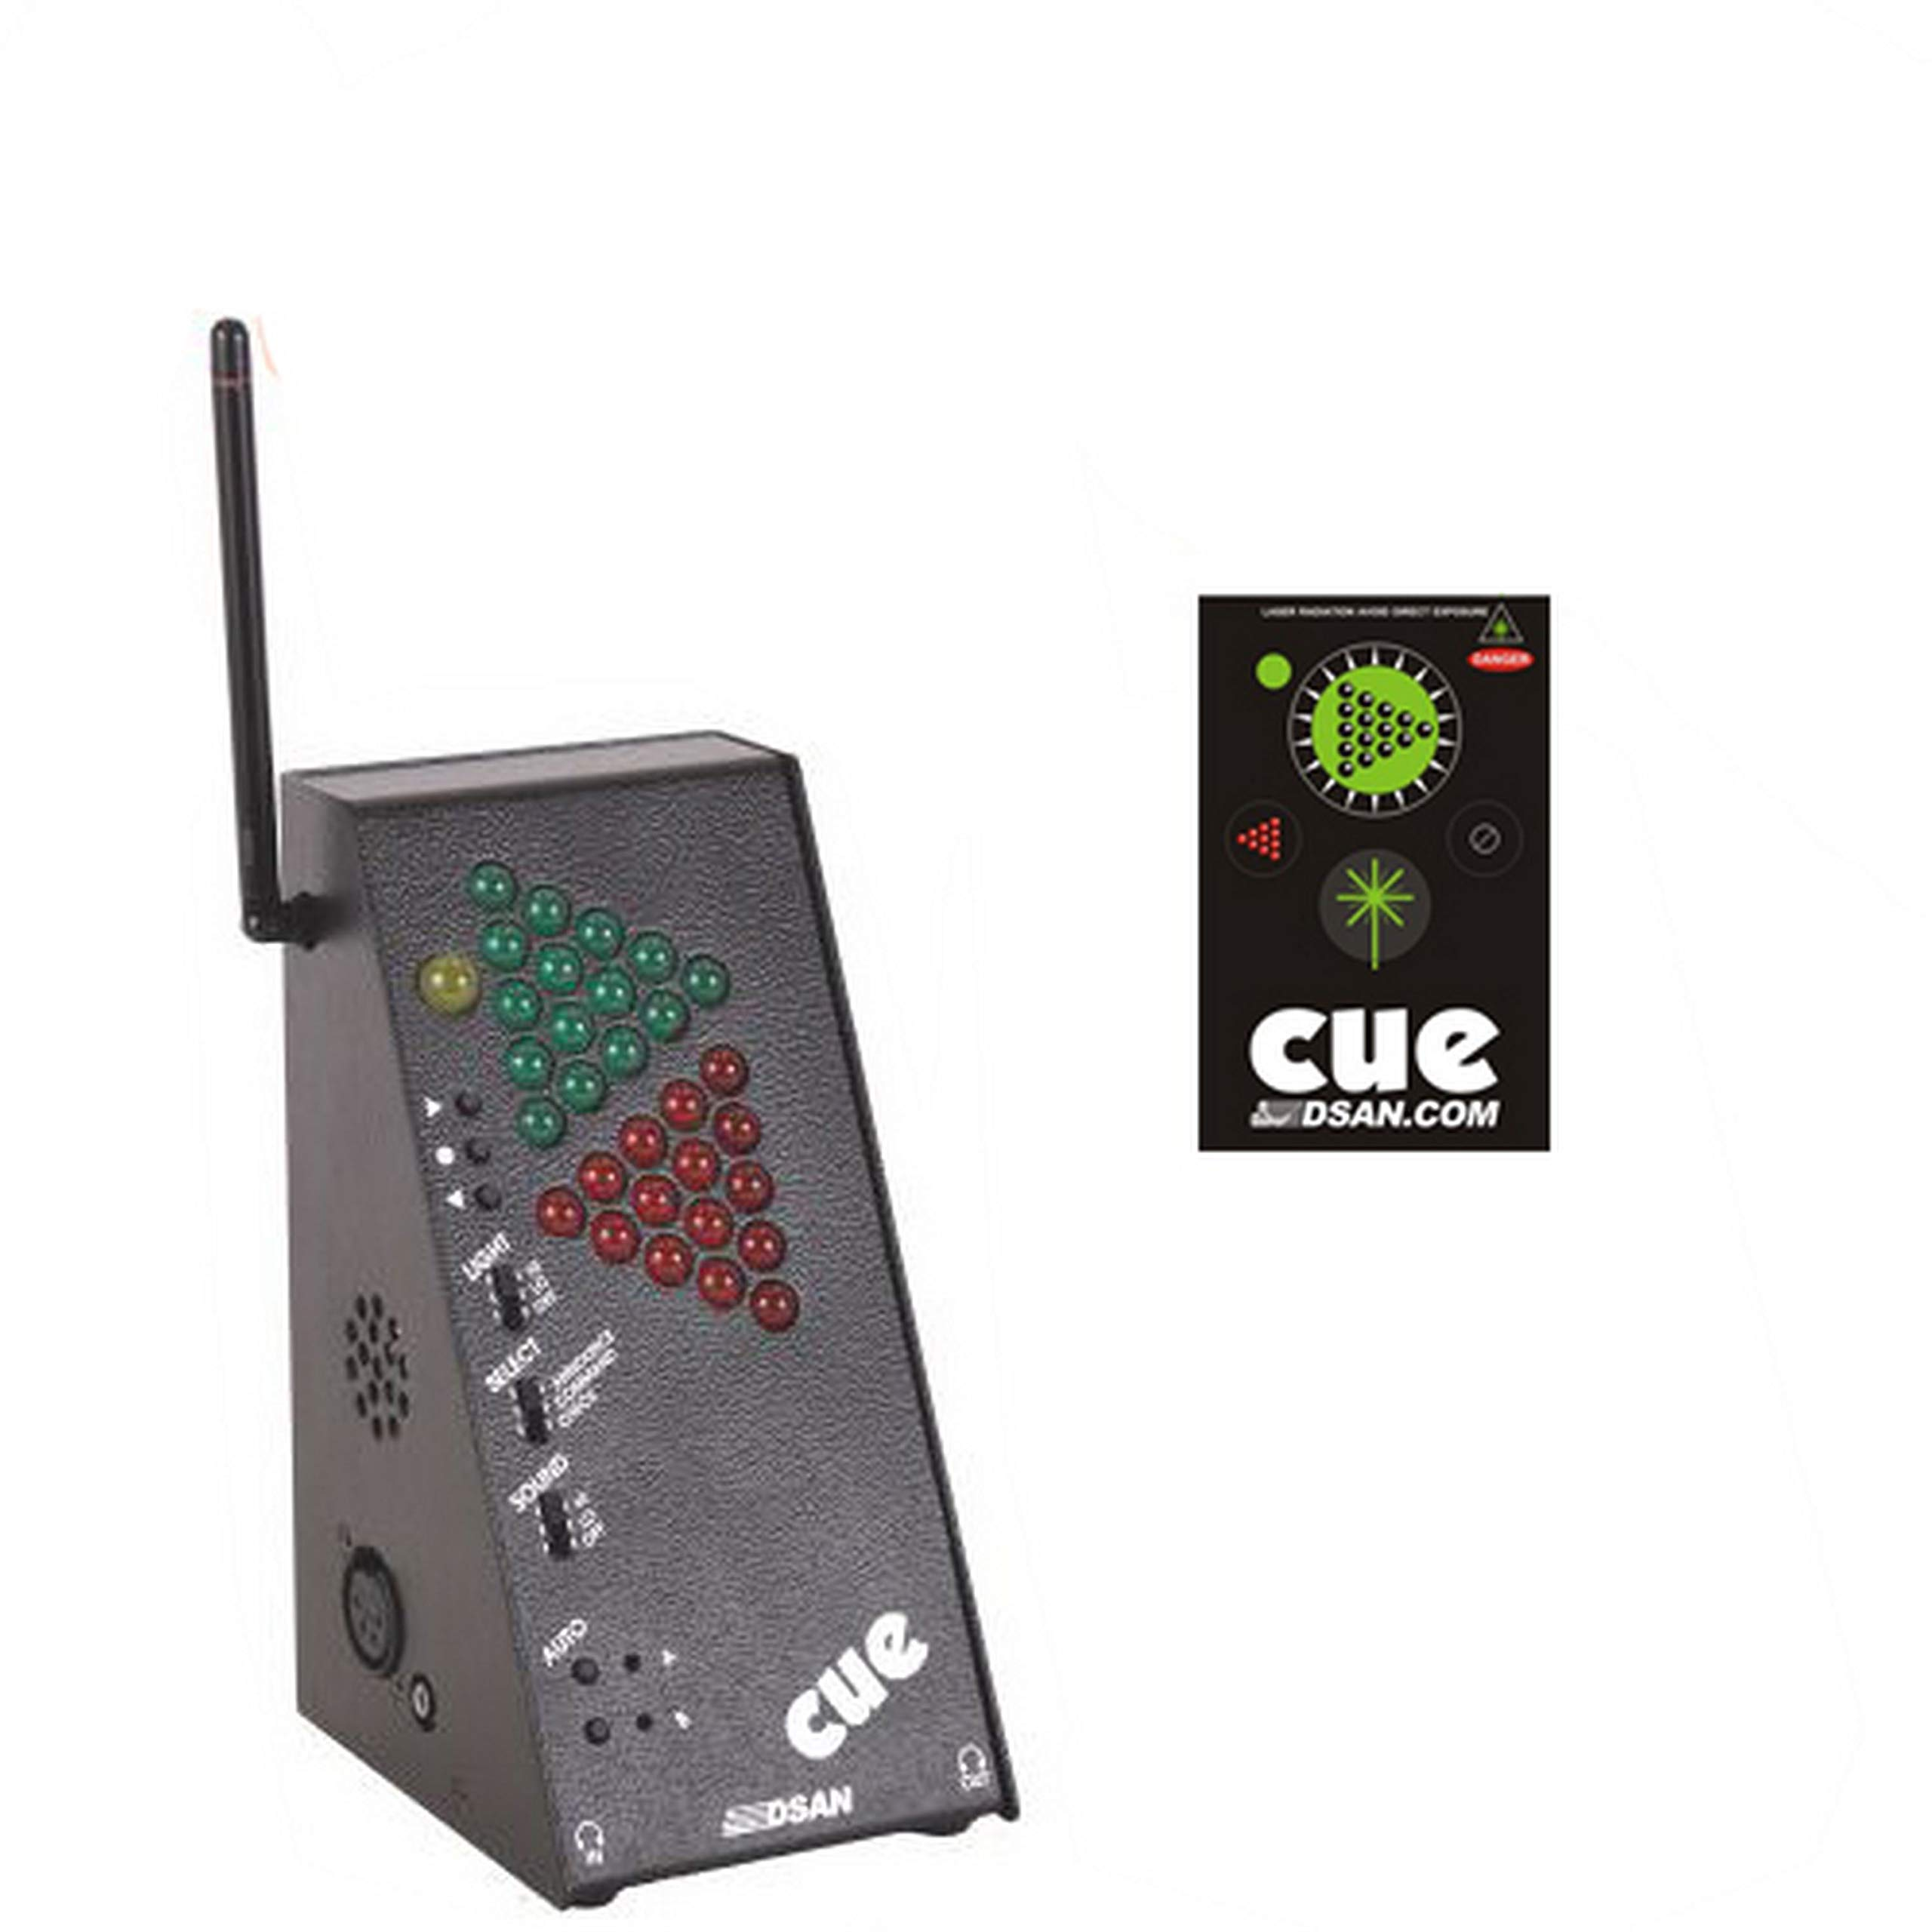 DSAN PC-433BP-SYS PerfectCue Light and Sound Signaling System with 3-Command Button Remote by DSAN (Image #1)